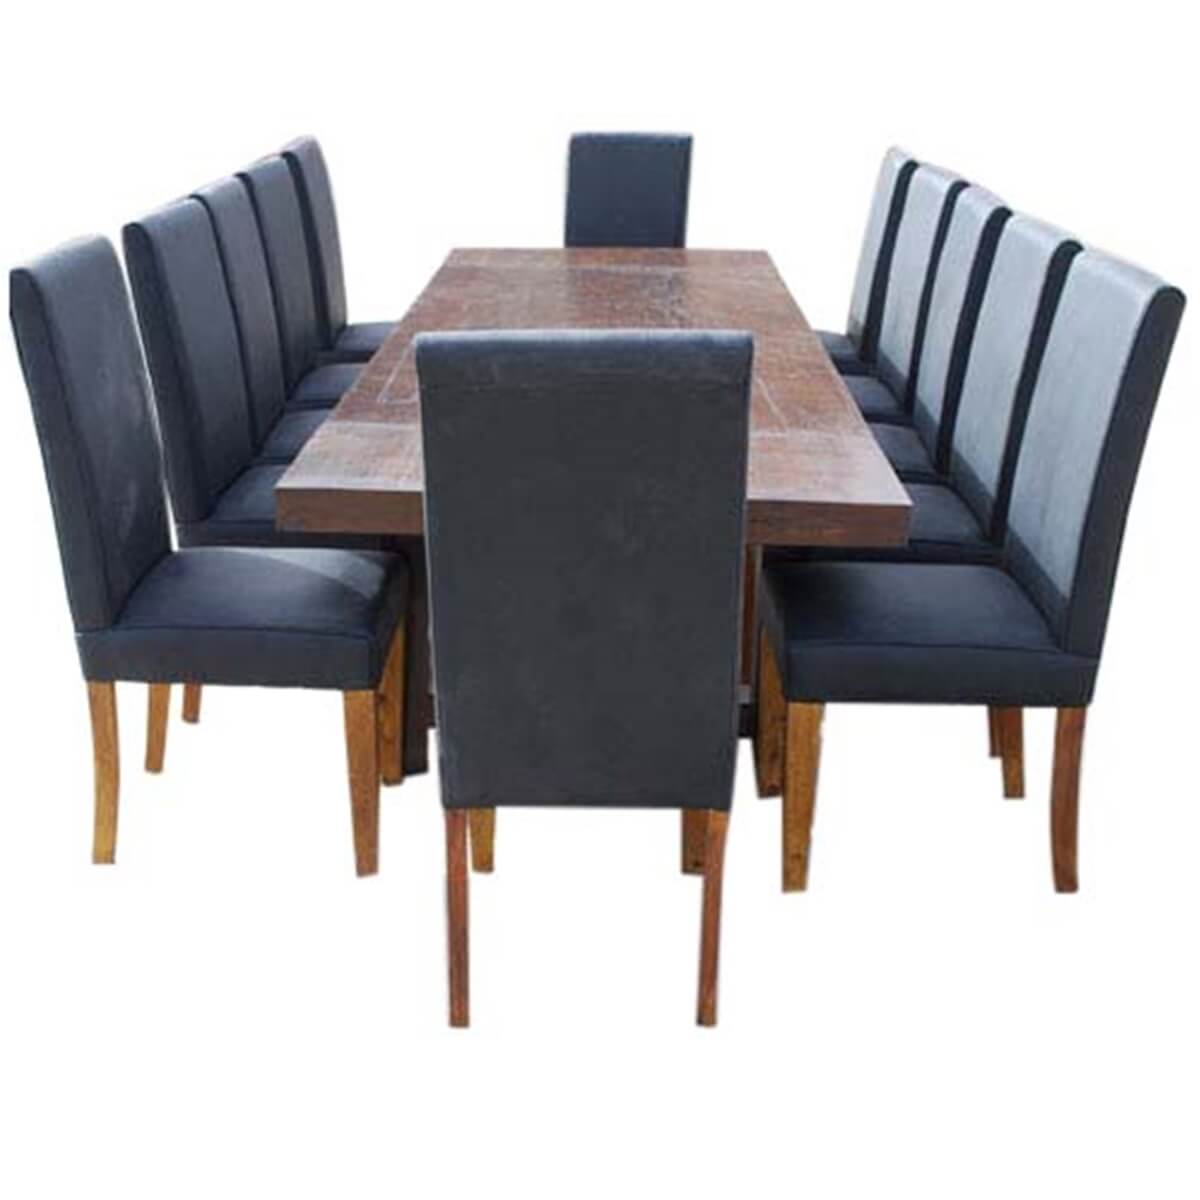 matterhorn extendable dining table and chair set for 12 people. Black Bedroom Furniture Sets. Home Design Ideas